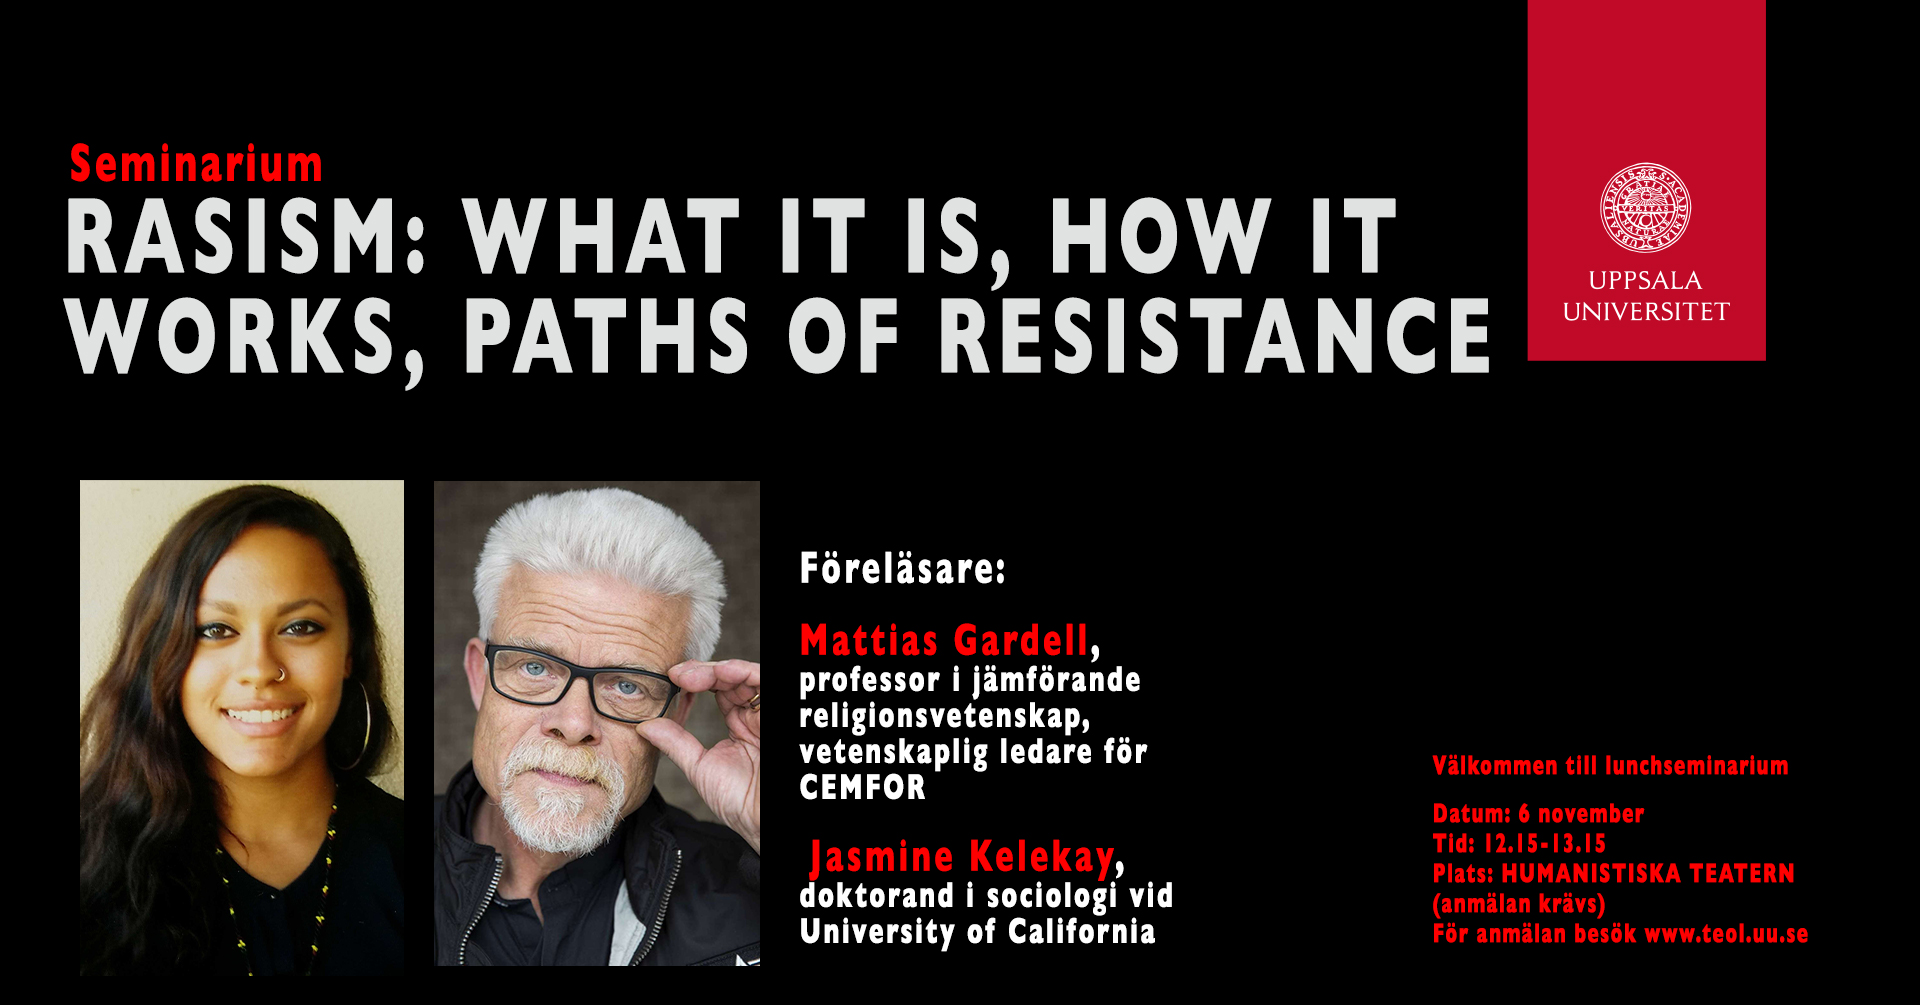 Racism: What it is, how it works, paths of resistance